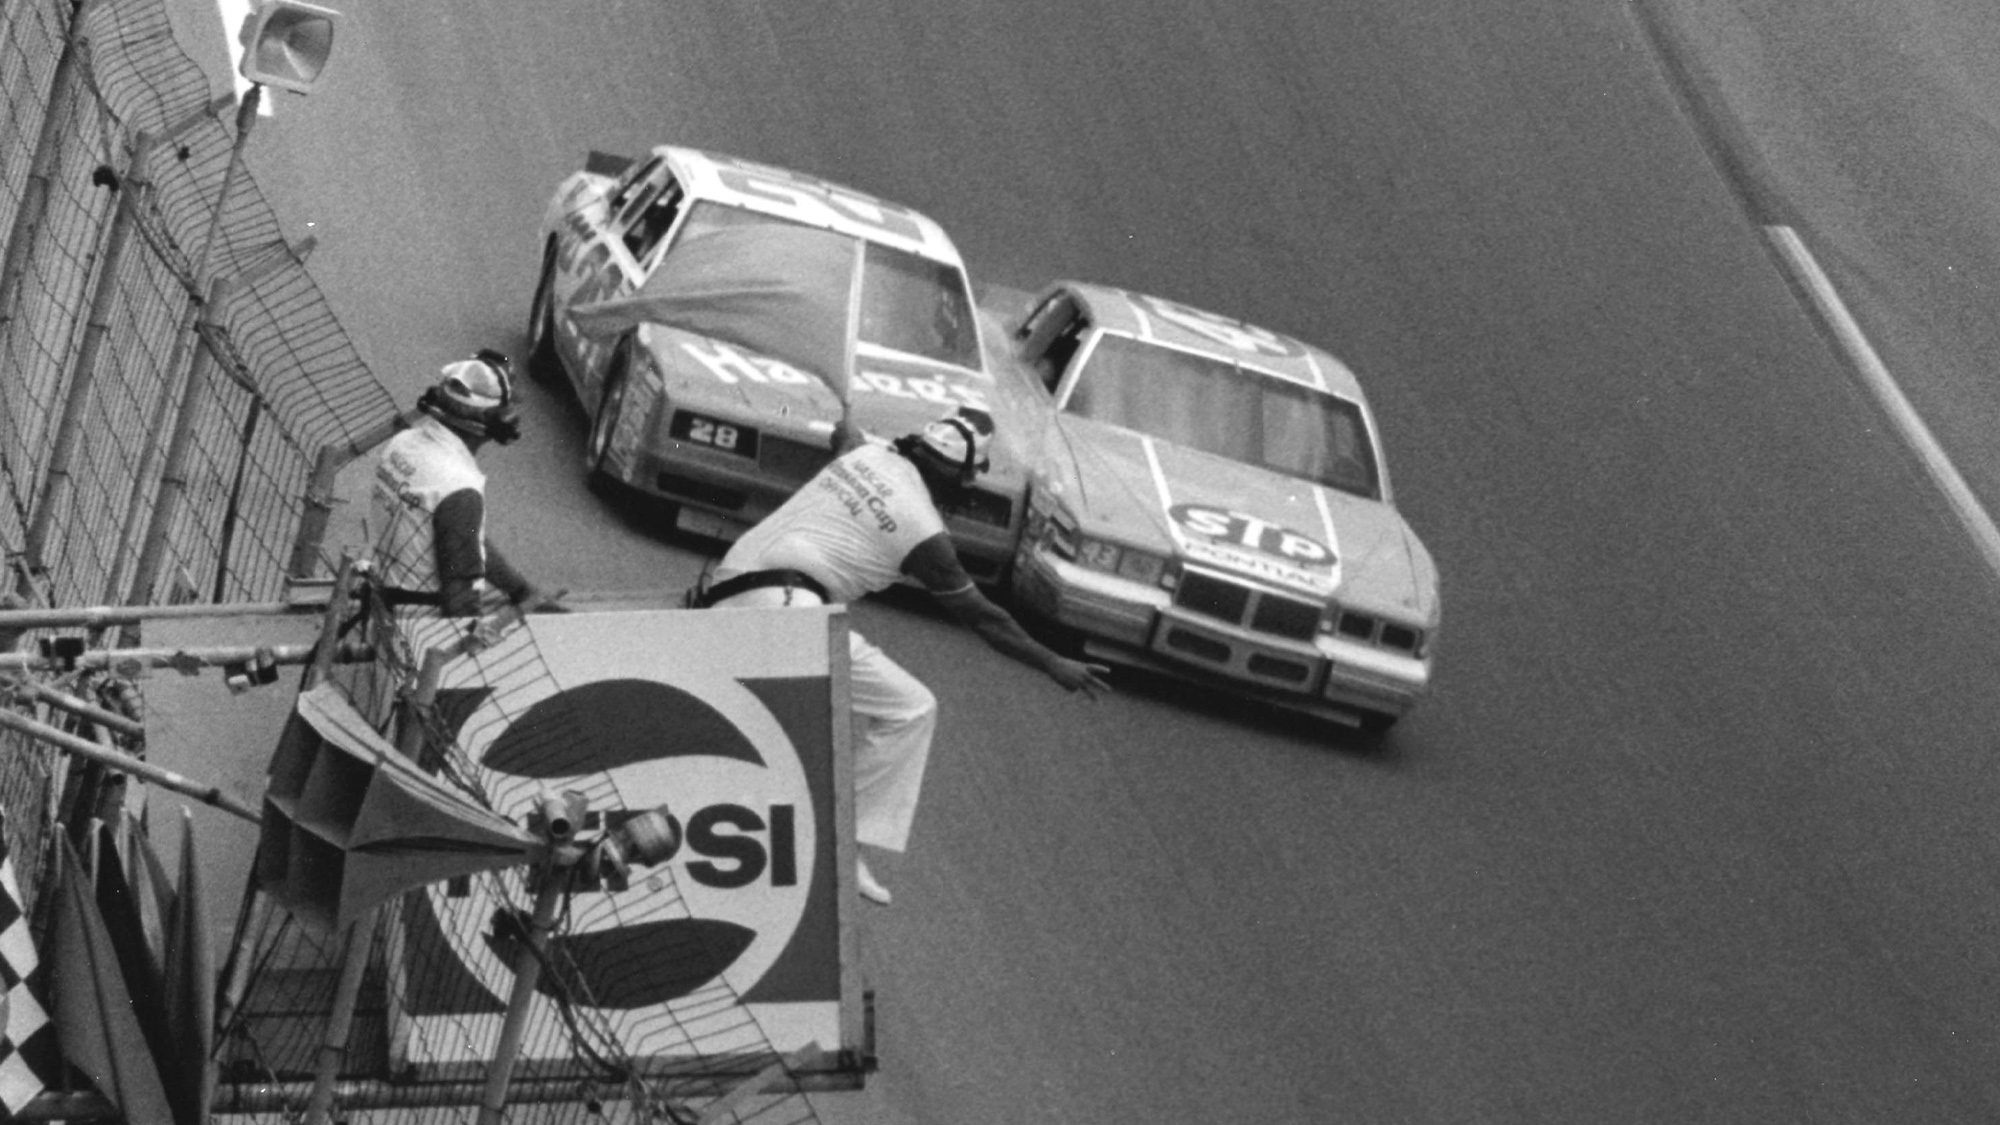 Richard Petty edges ahead of Cale Yarborough at the 1984 Firecracker 400